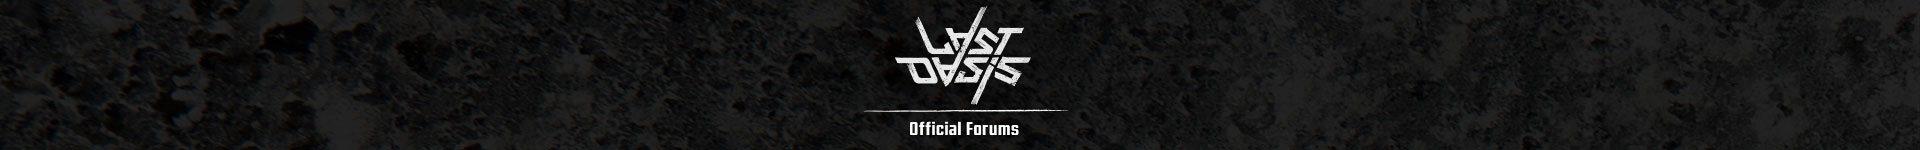 Last Oasis Official Forums